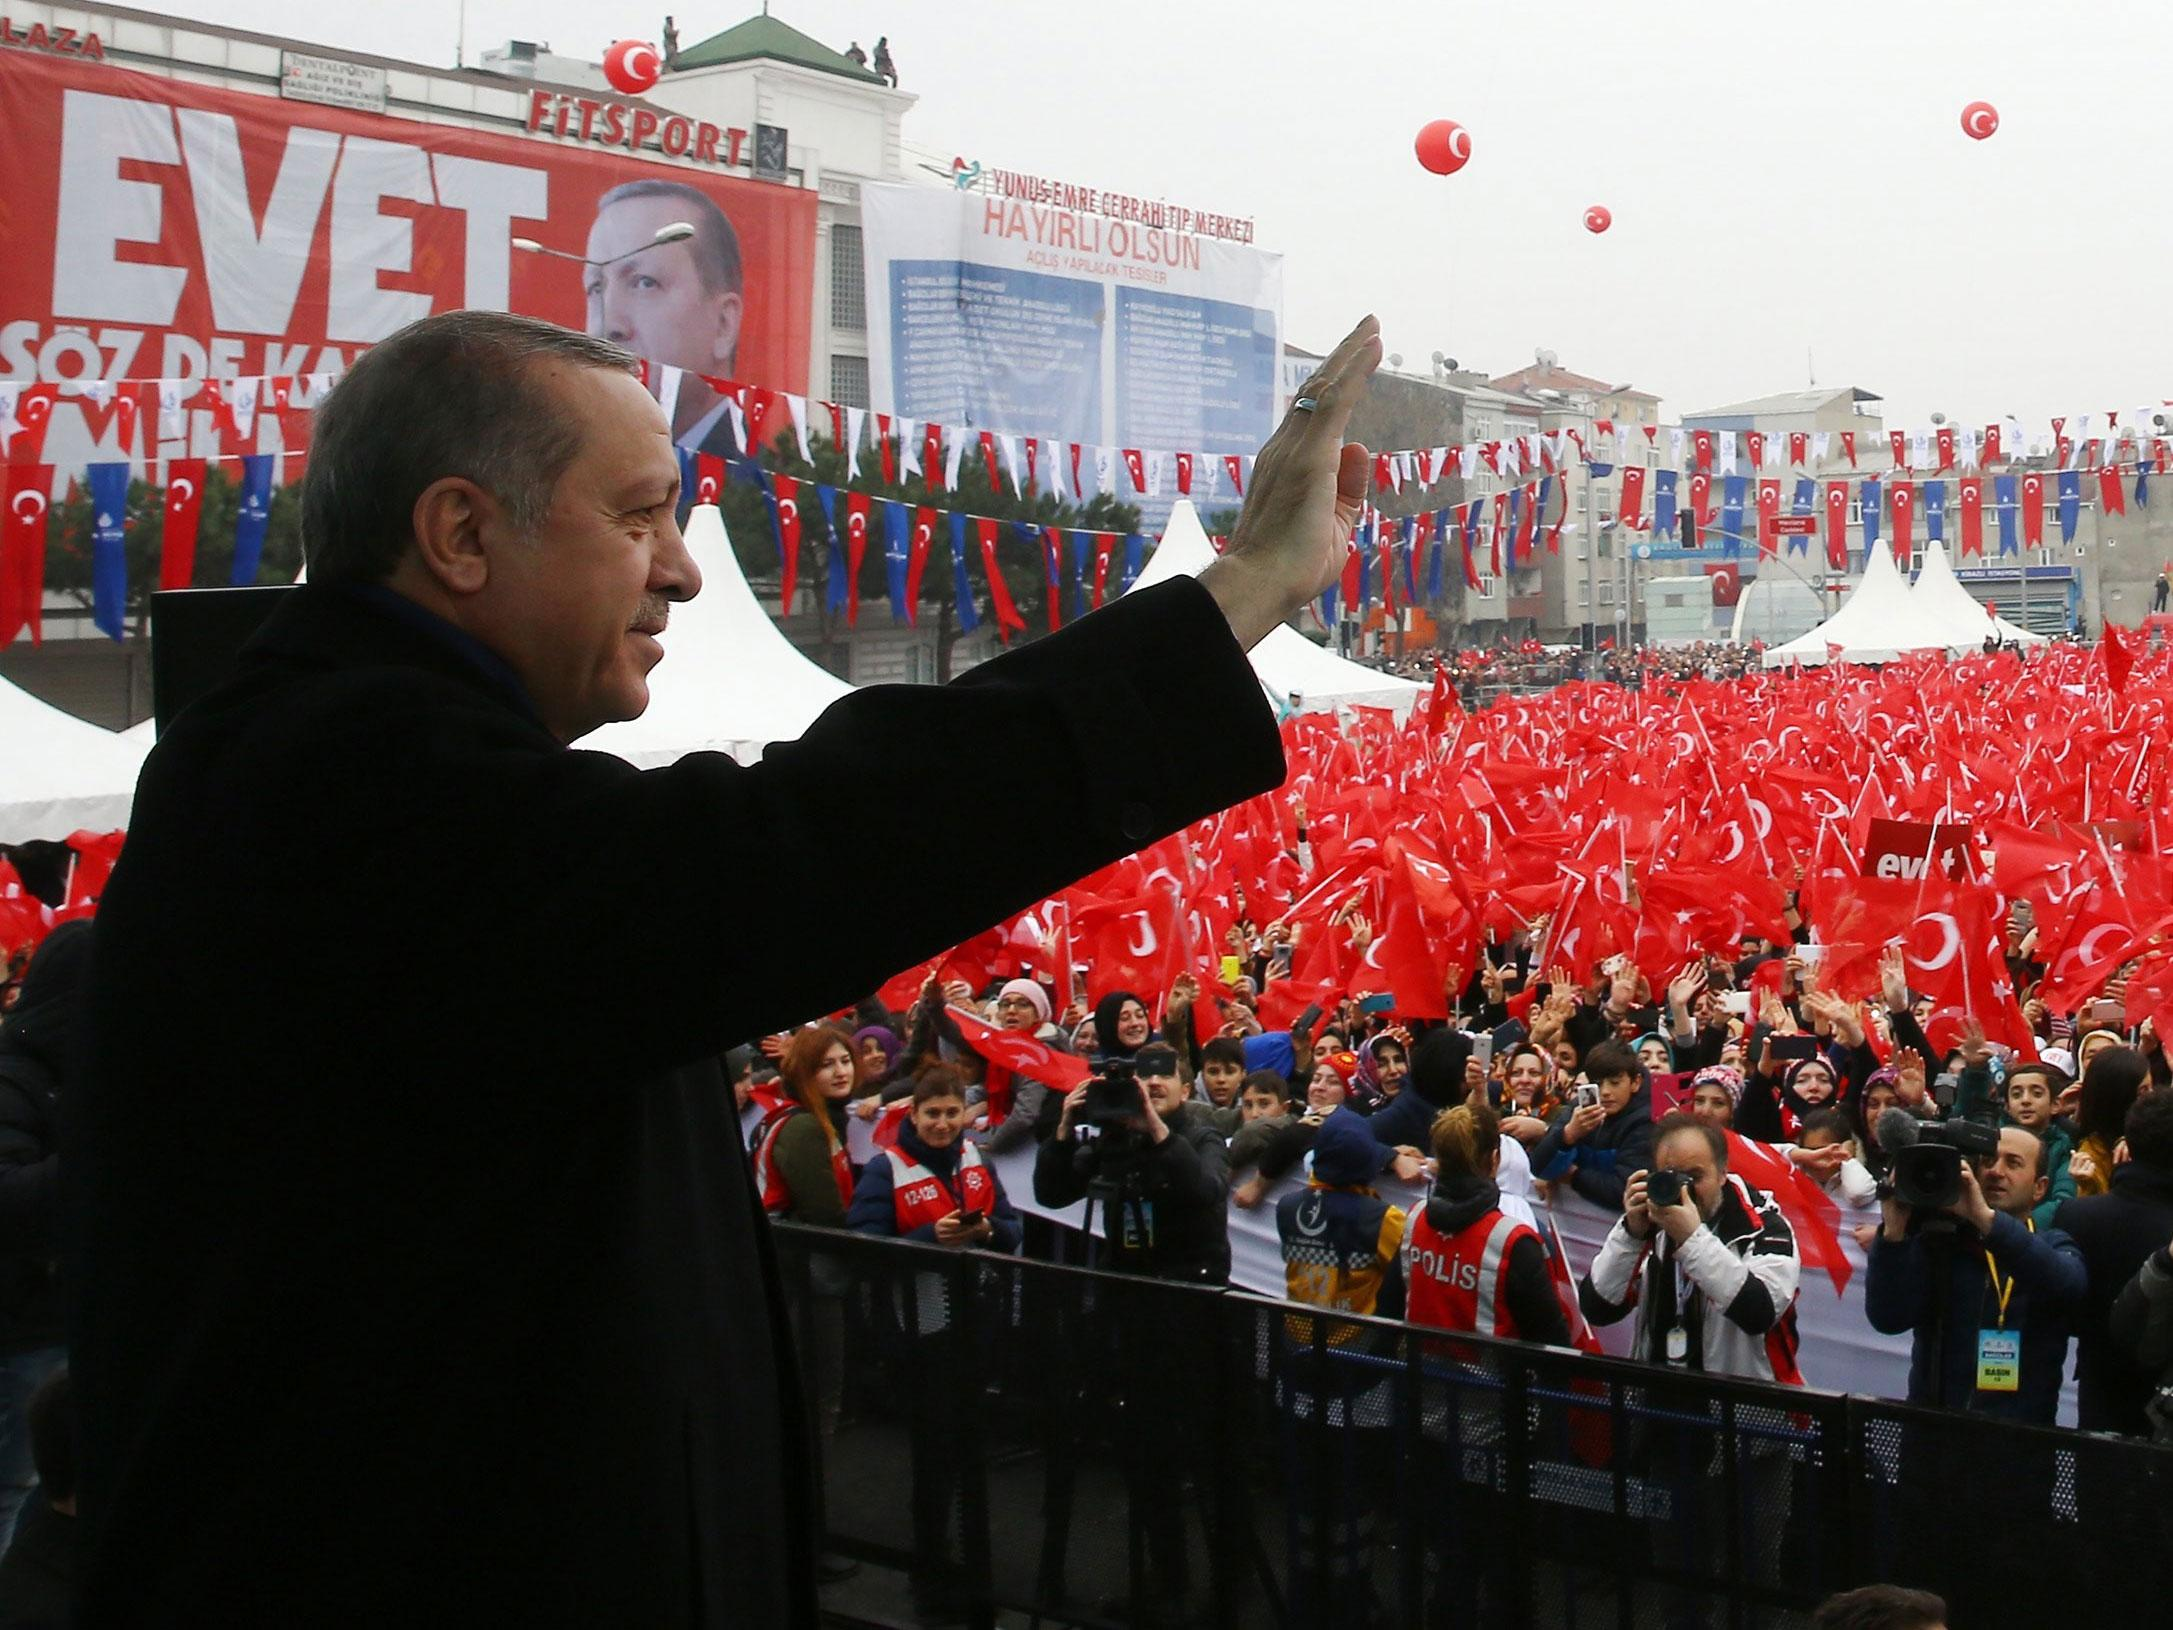 It is President Erdogan's Turkey, not humane Germany, that is guilty of 'Nazi practices'